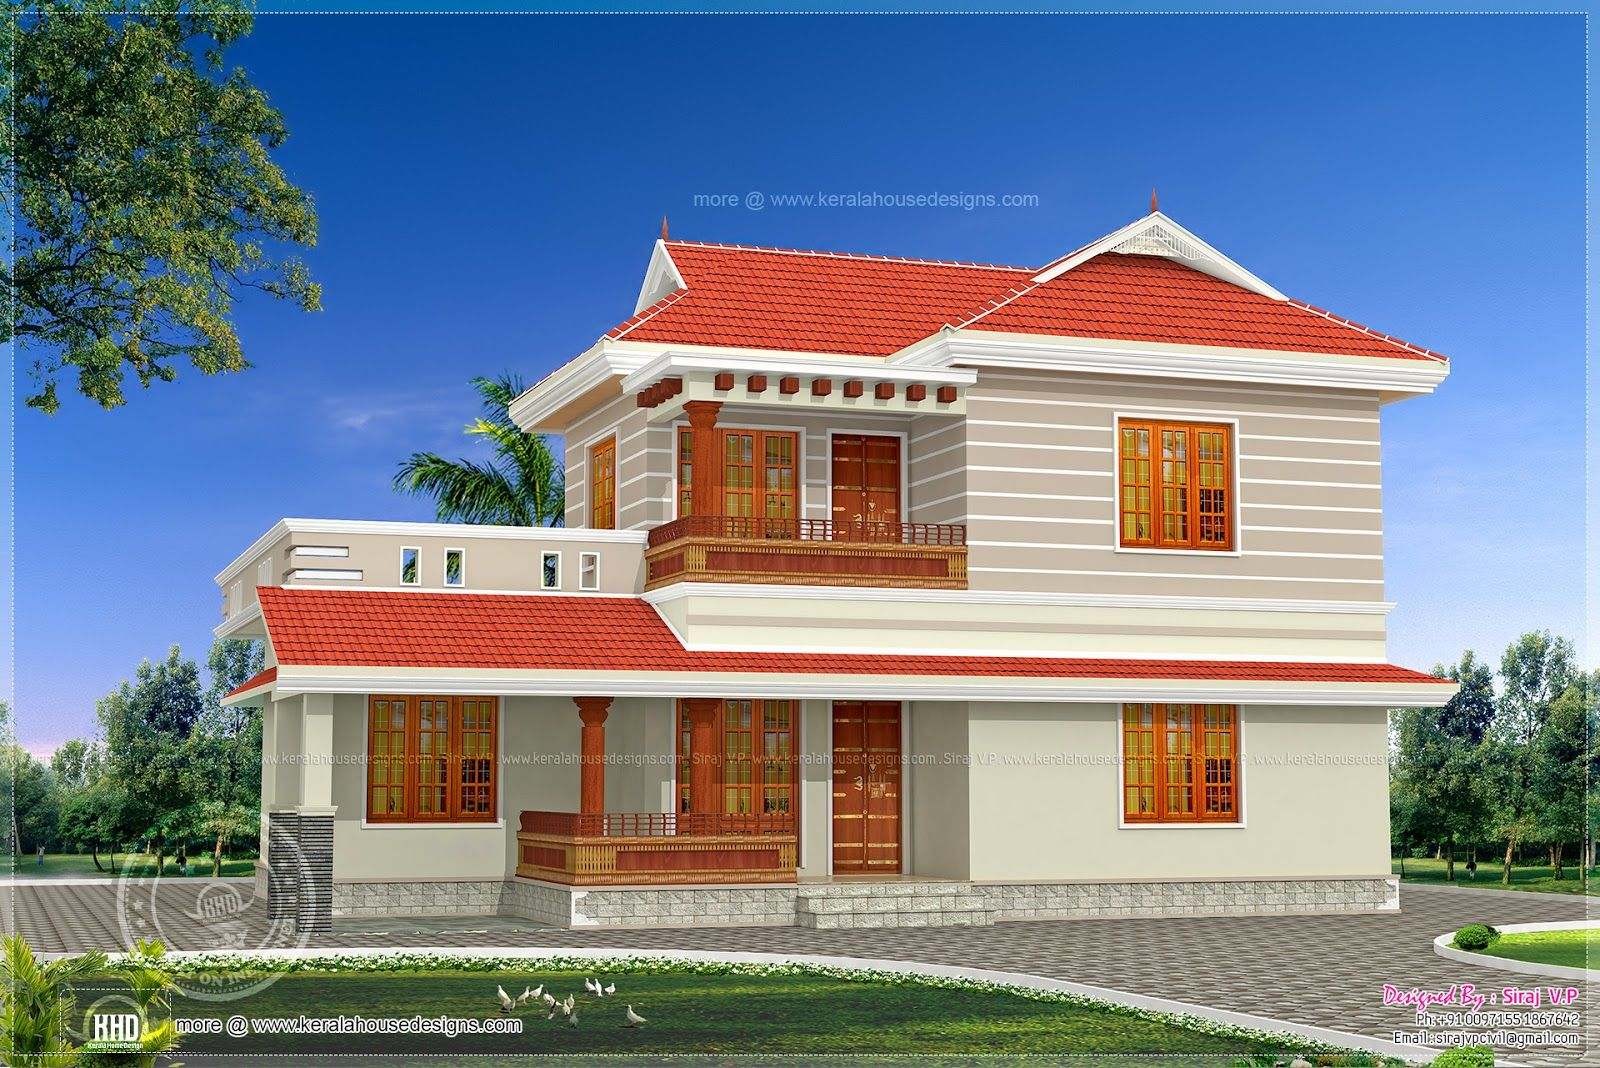 Amazing Front Design Of Rcc House Part - 10: Design Square Yards Kerala Home And Floor Plans Front Elevation Kanal House  Drawing Layout